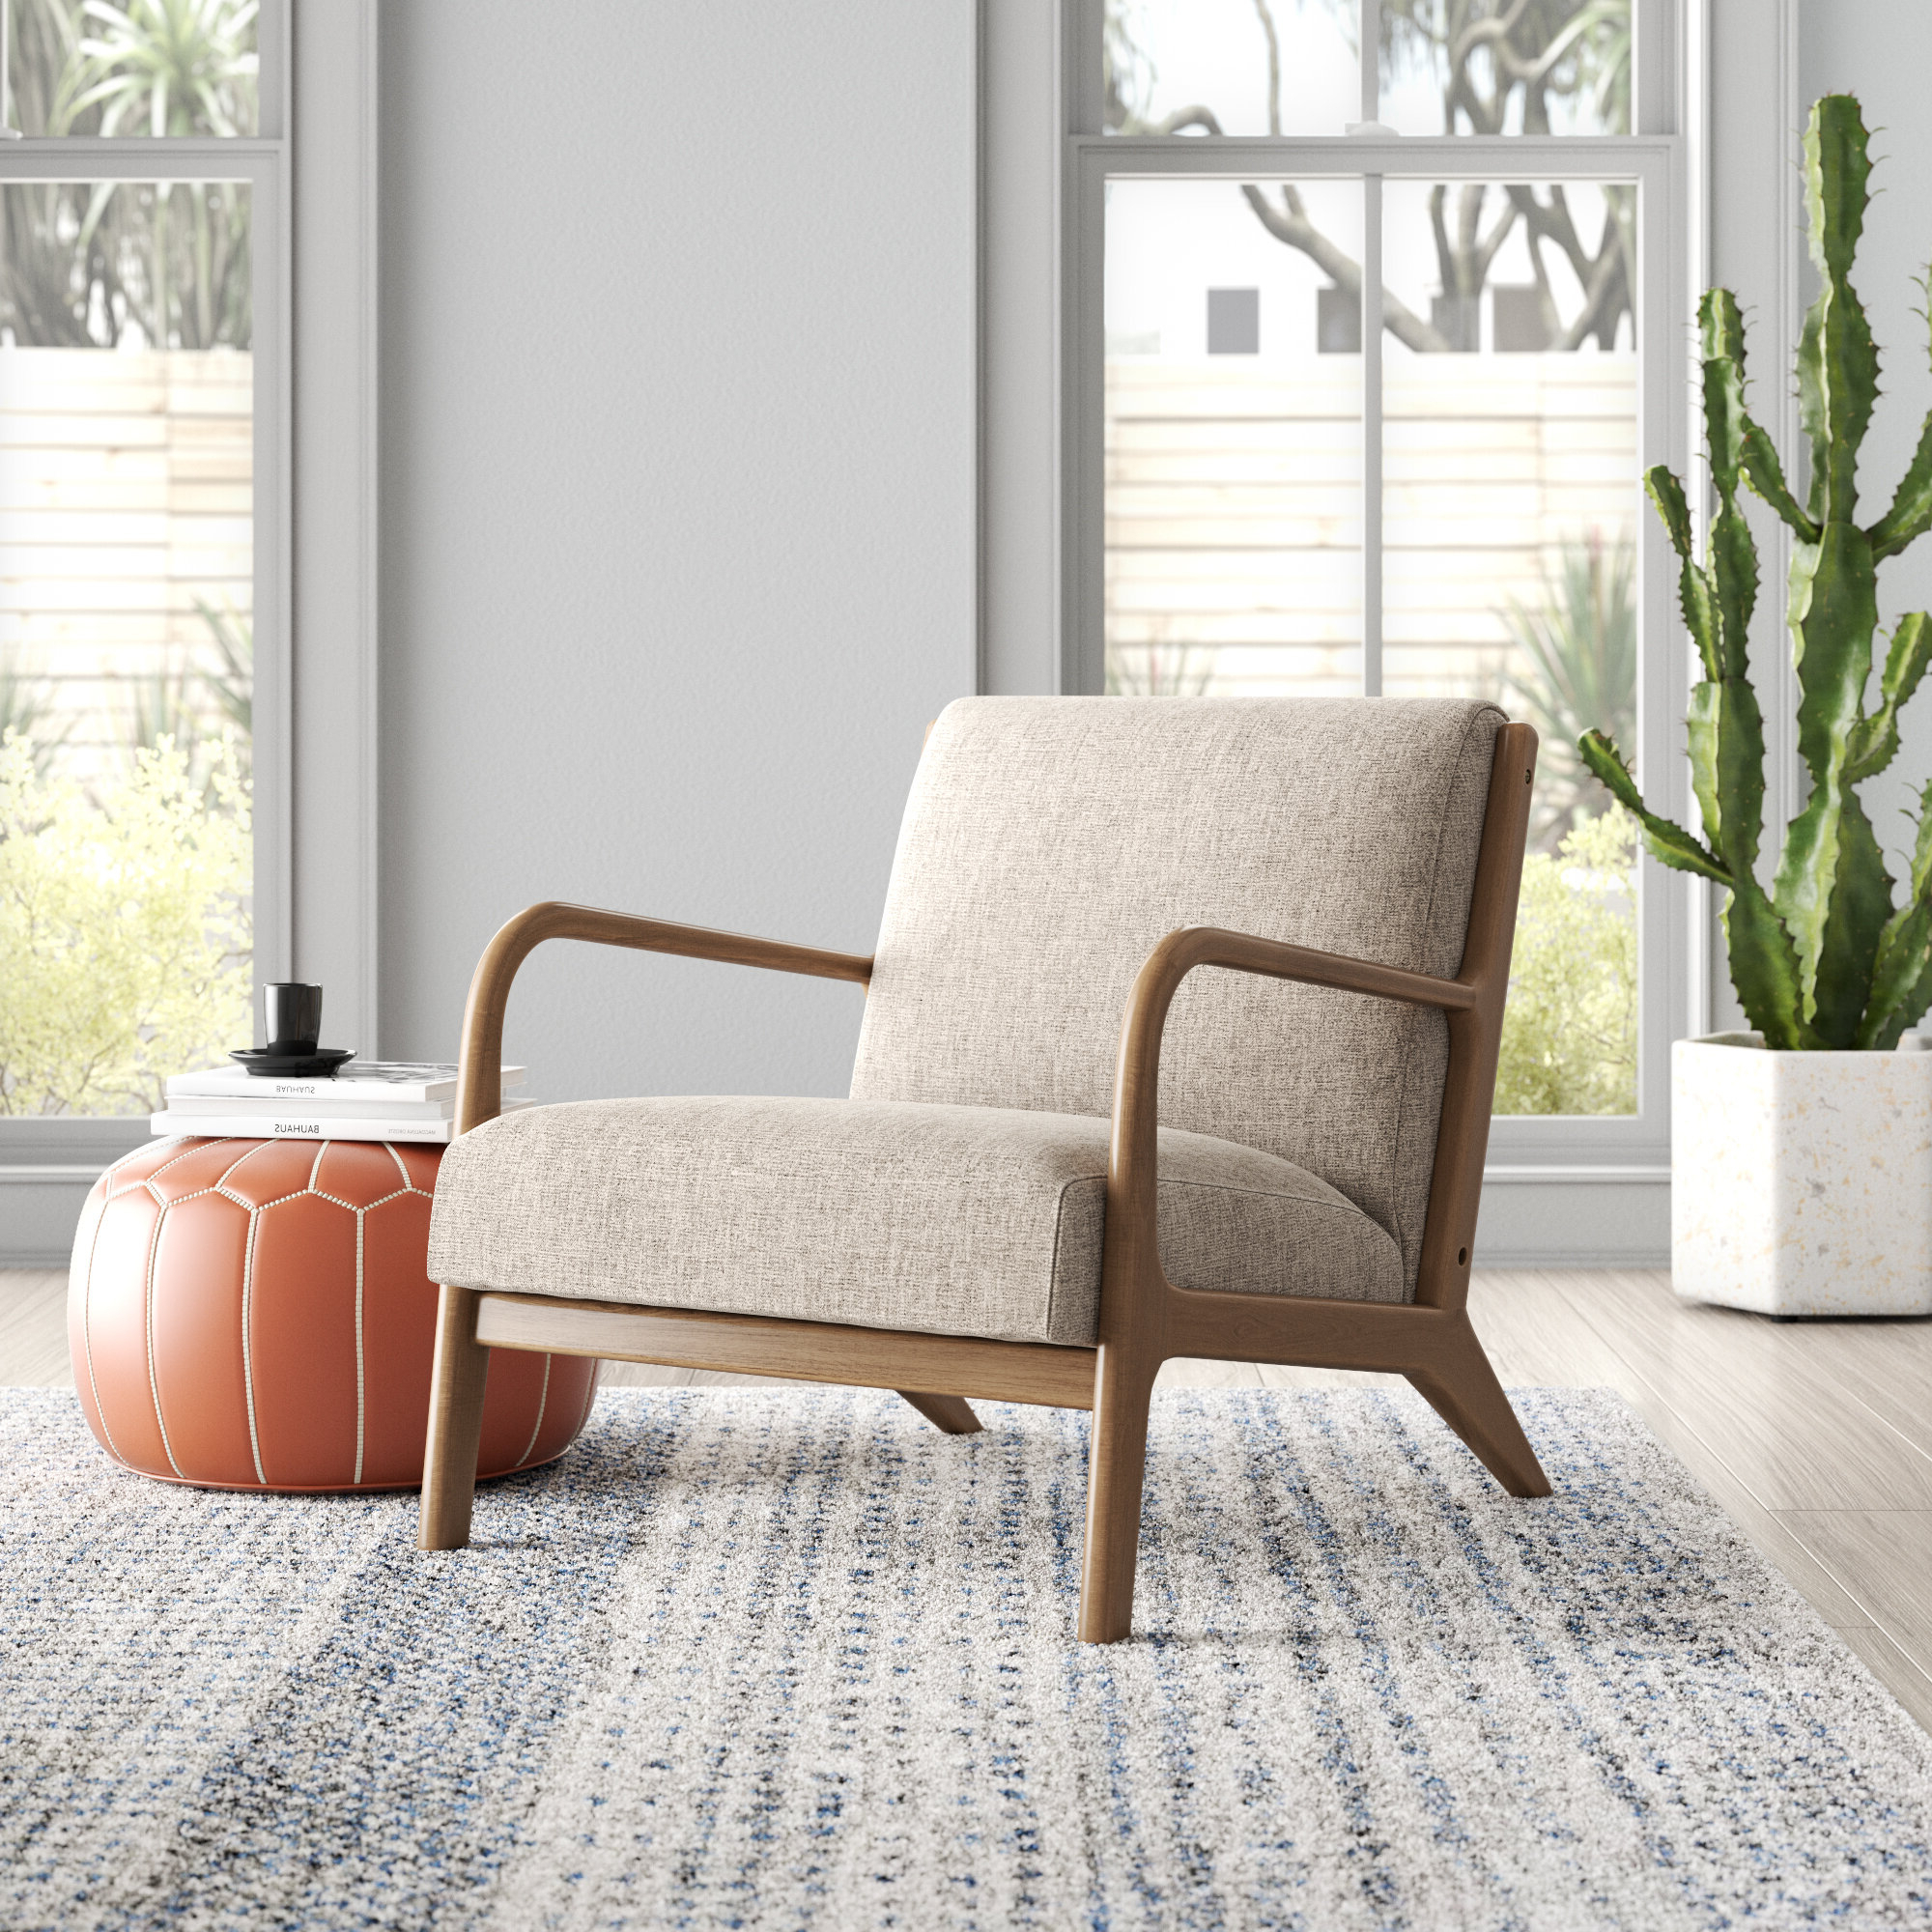 2020 Arm Modern & Contemporary Accent Chairs You'll Love In 2021 Inside Belz Tufted Polyester Armchairs (View 14 of 20)